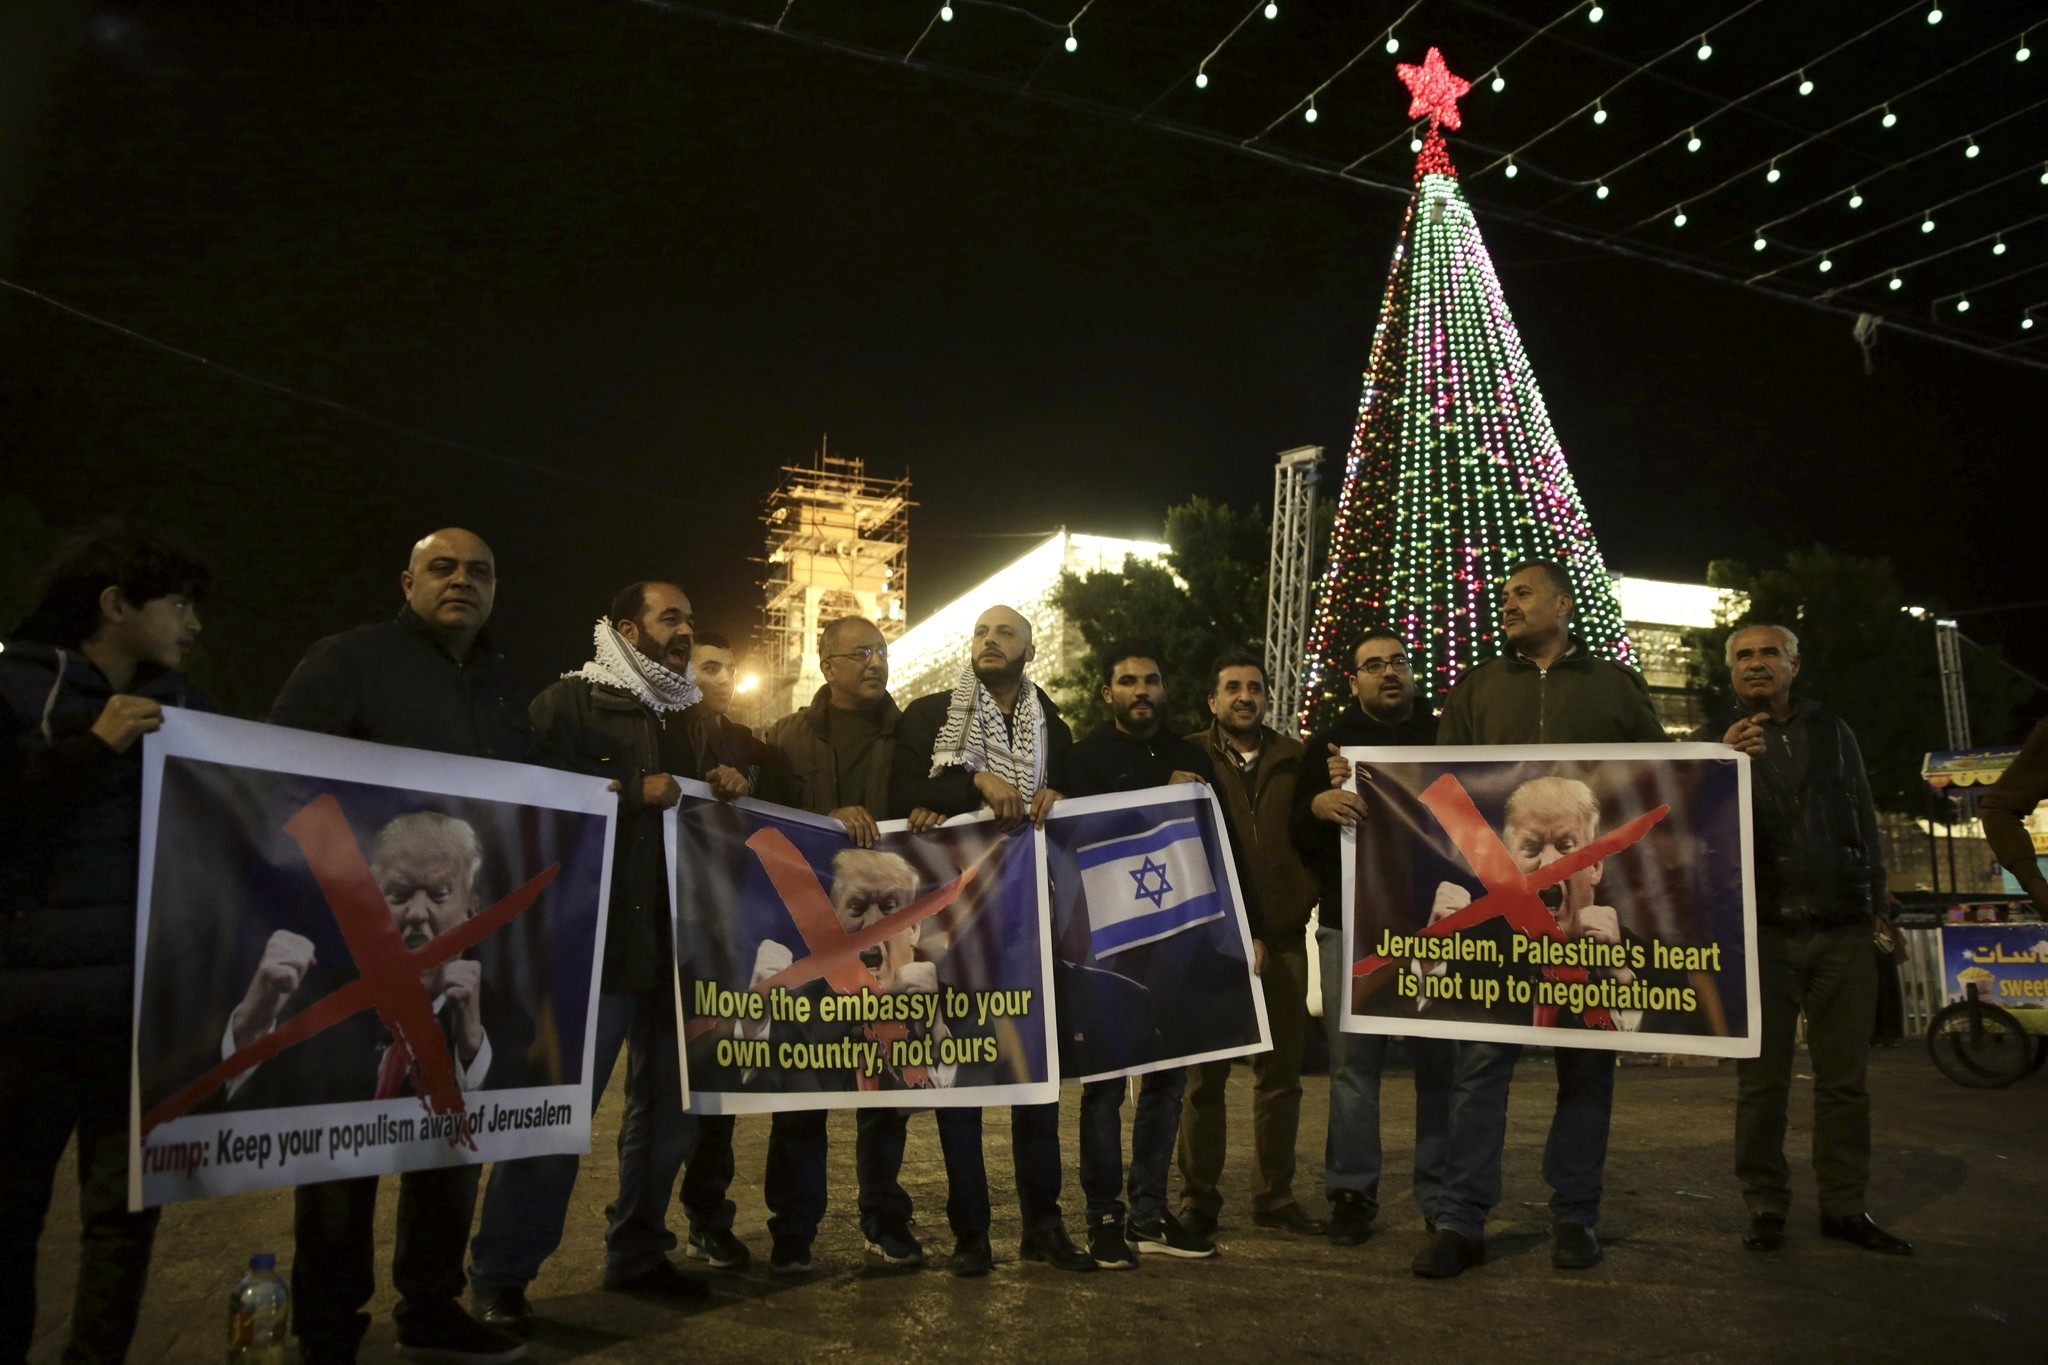 Palestinians hold posters of the U.S. President Donald Trump during a protest in Bethlehem, West Bank, Tuesday, Dec. 6, 2017. (AP Photo)